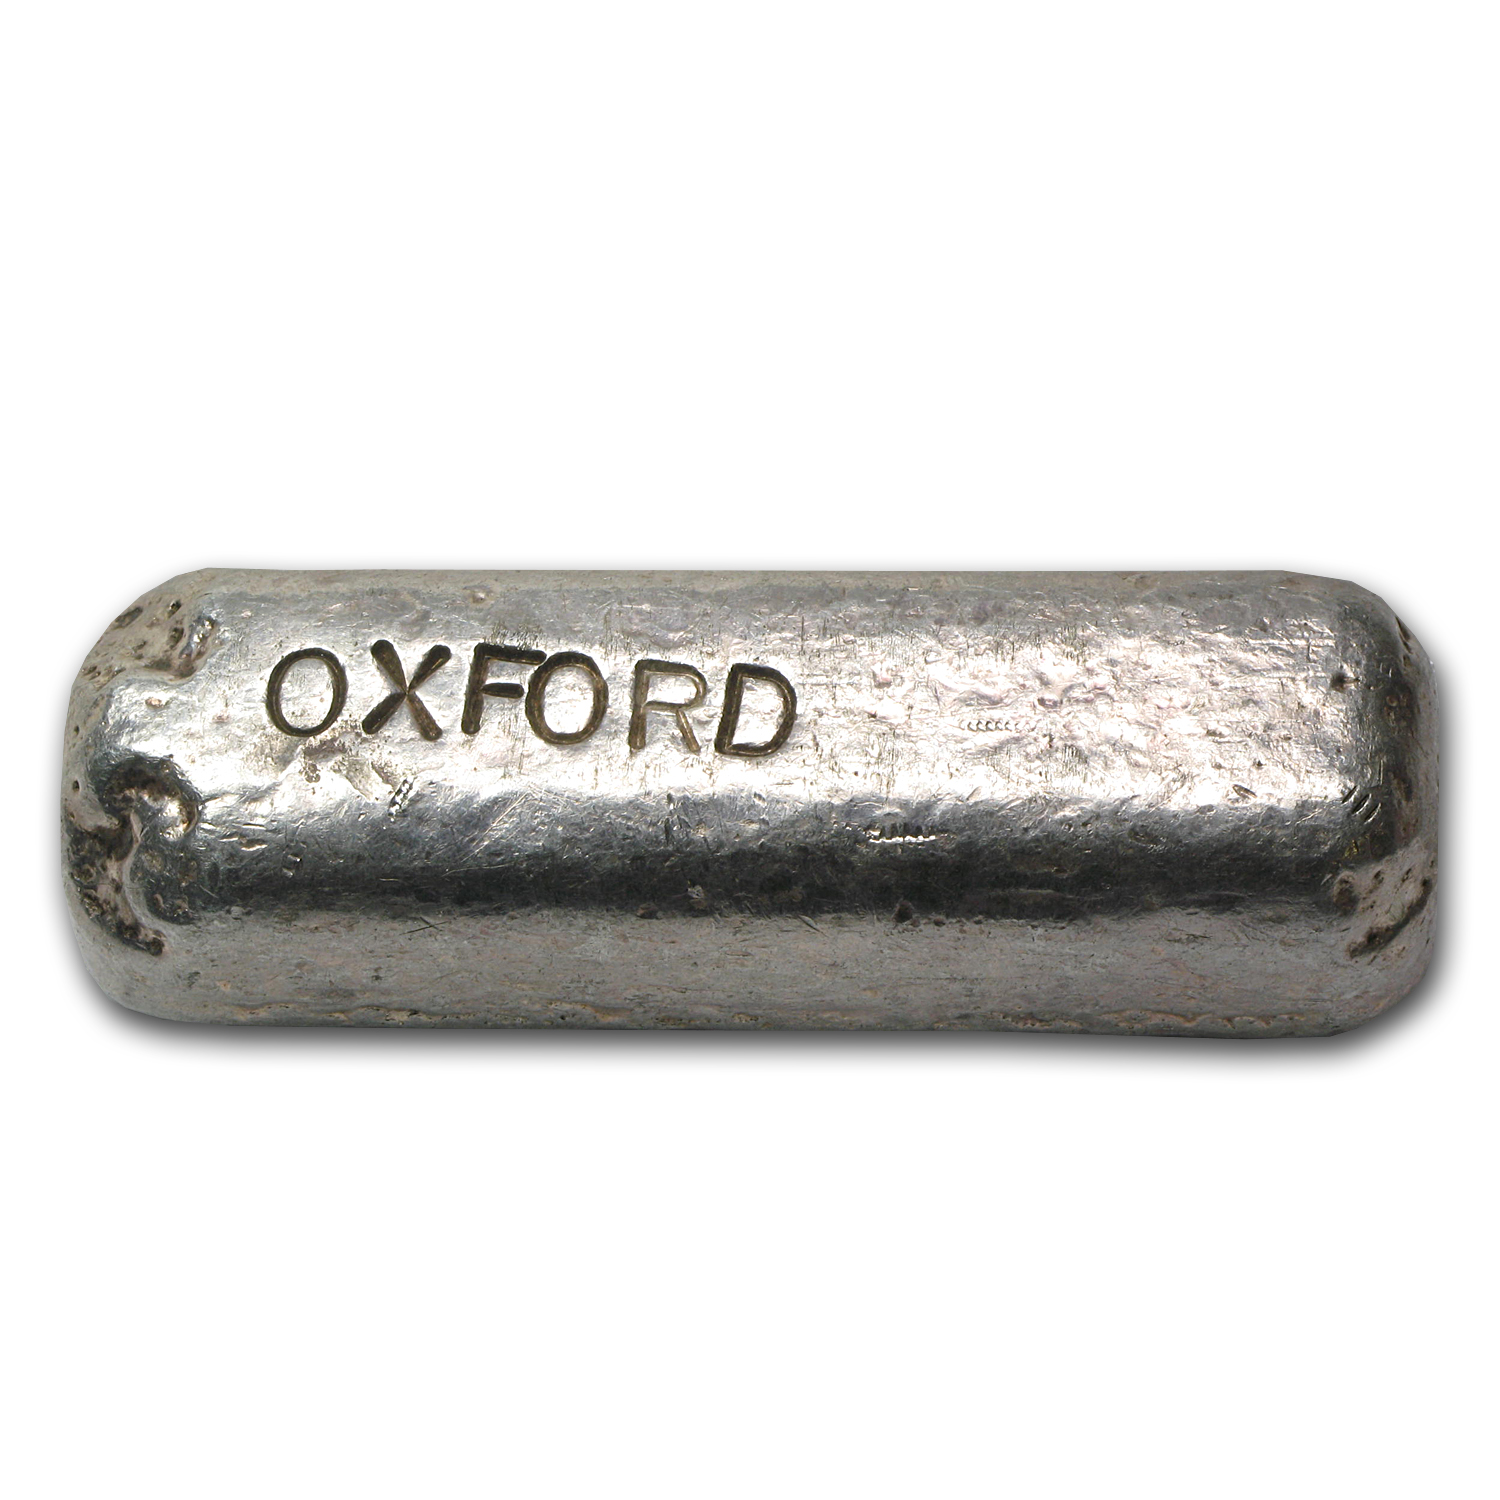 10.07 oz Silver Bars - Oxford (Poured)